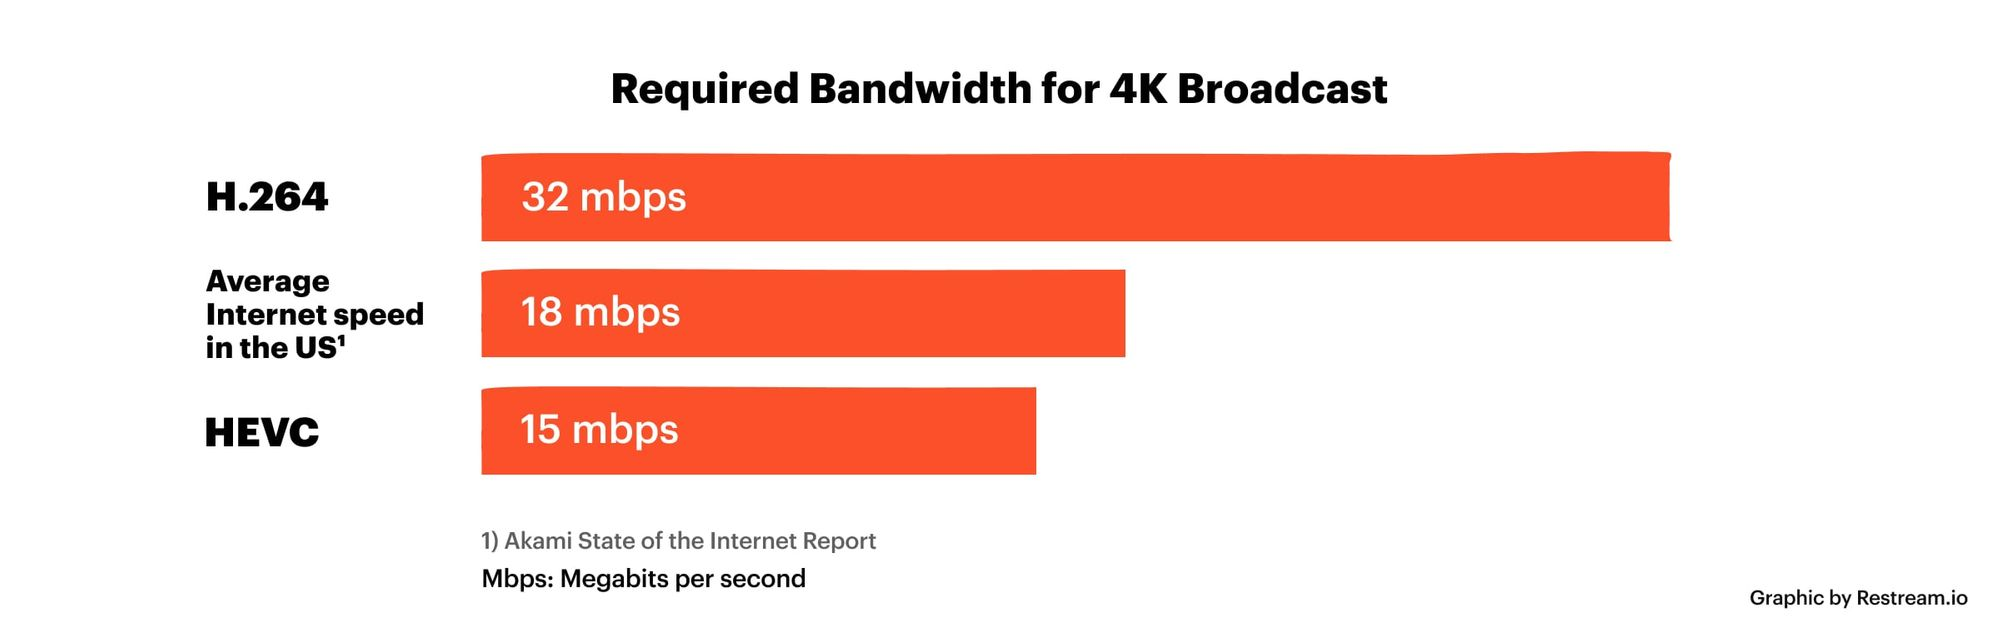 Required bandwidth for 4K broadcast